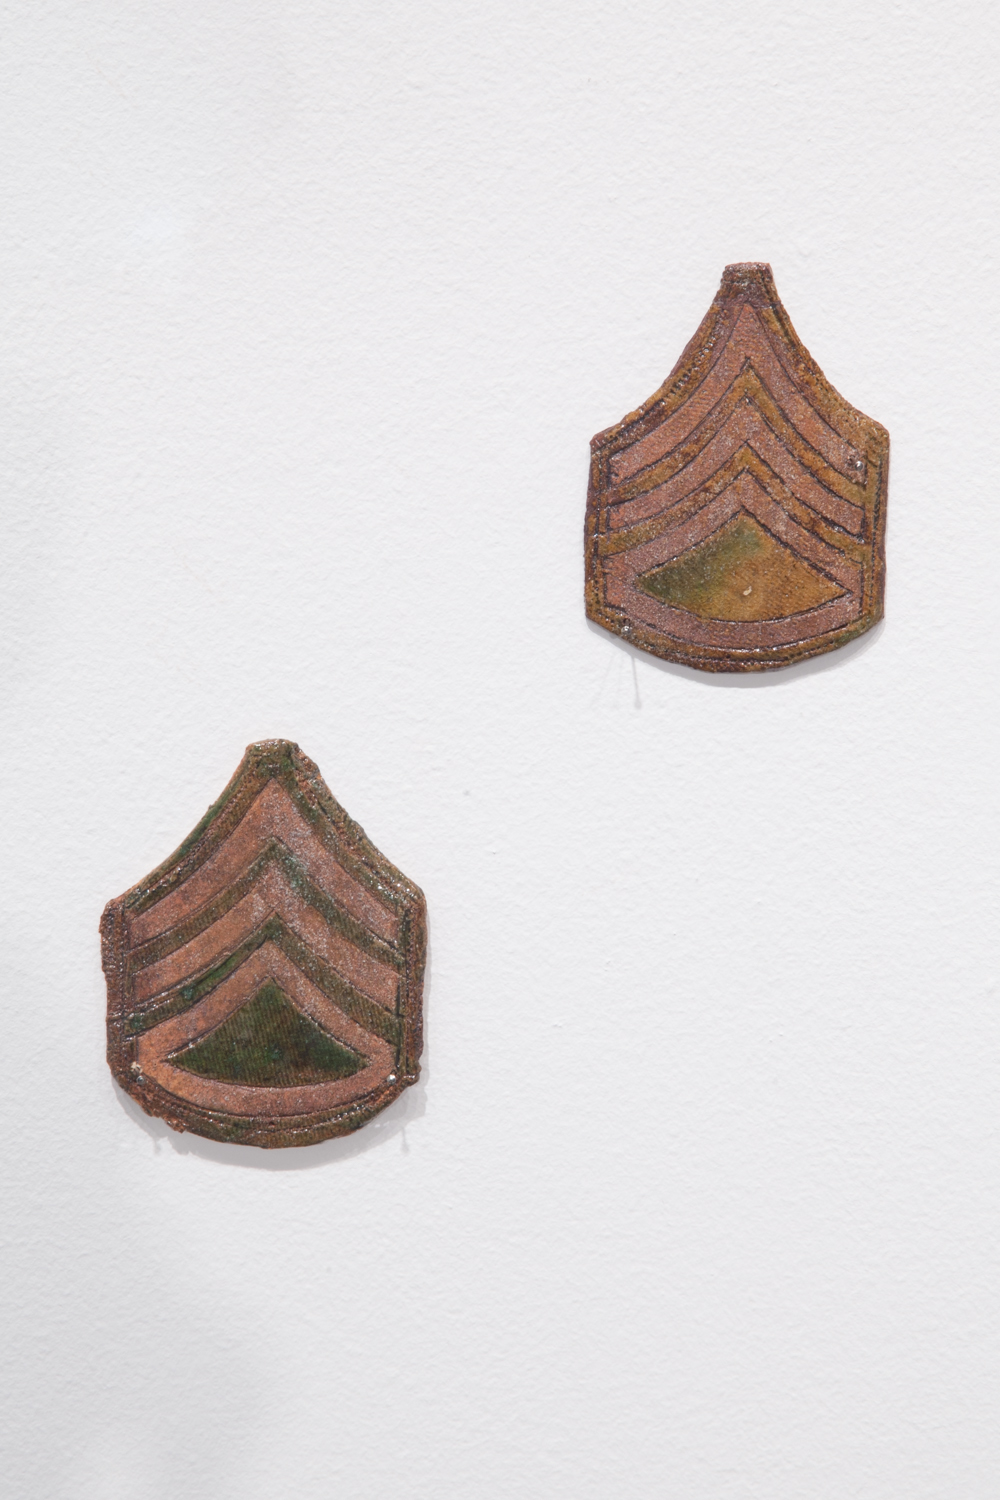 Claire Shurley     Army Patches     reclaimed stoneware, dirt from Shurley farmland, black stain, iron oxide, glaze, cone 6 oxidation